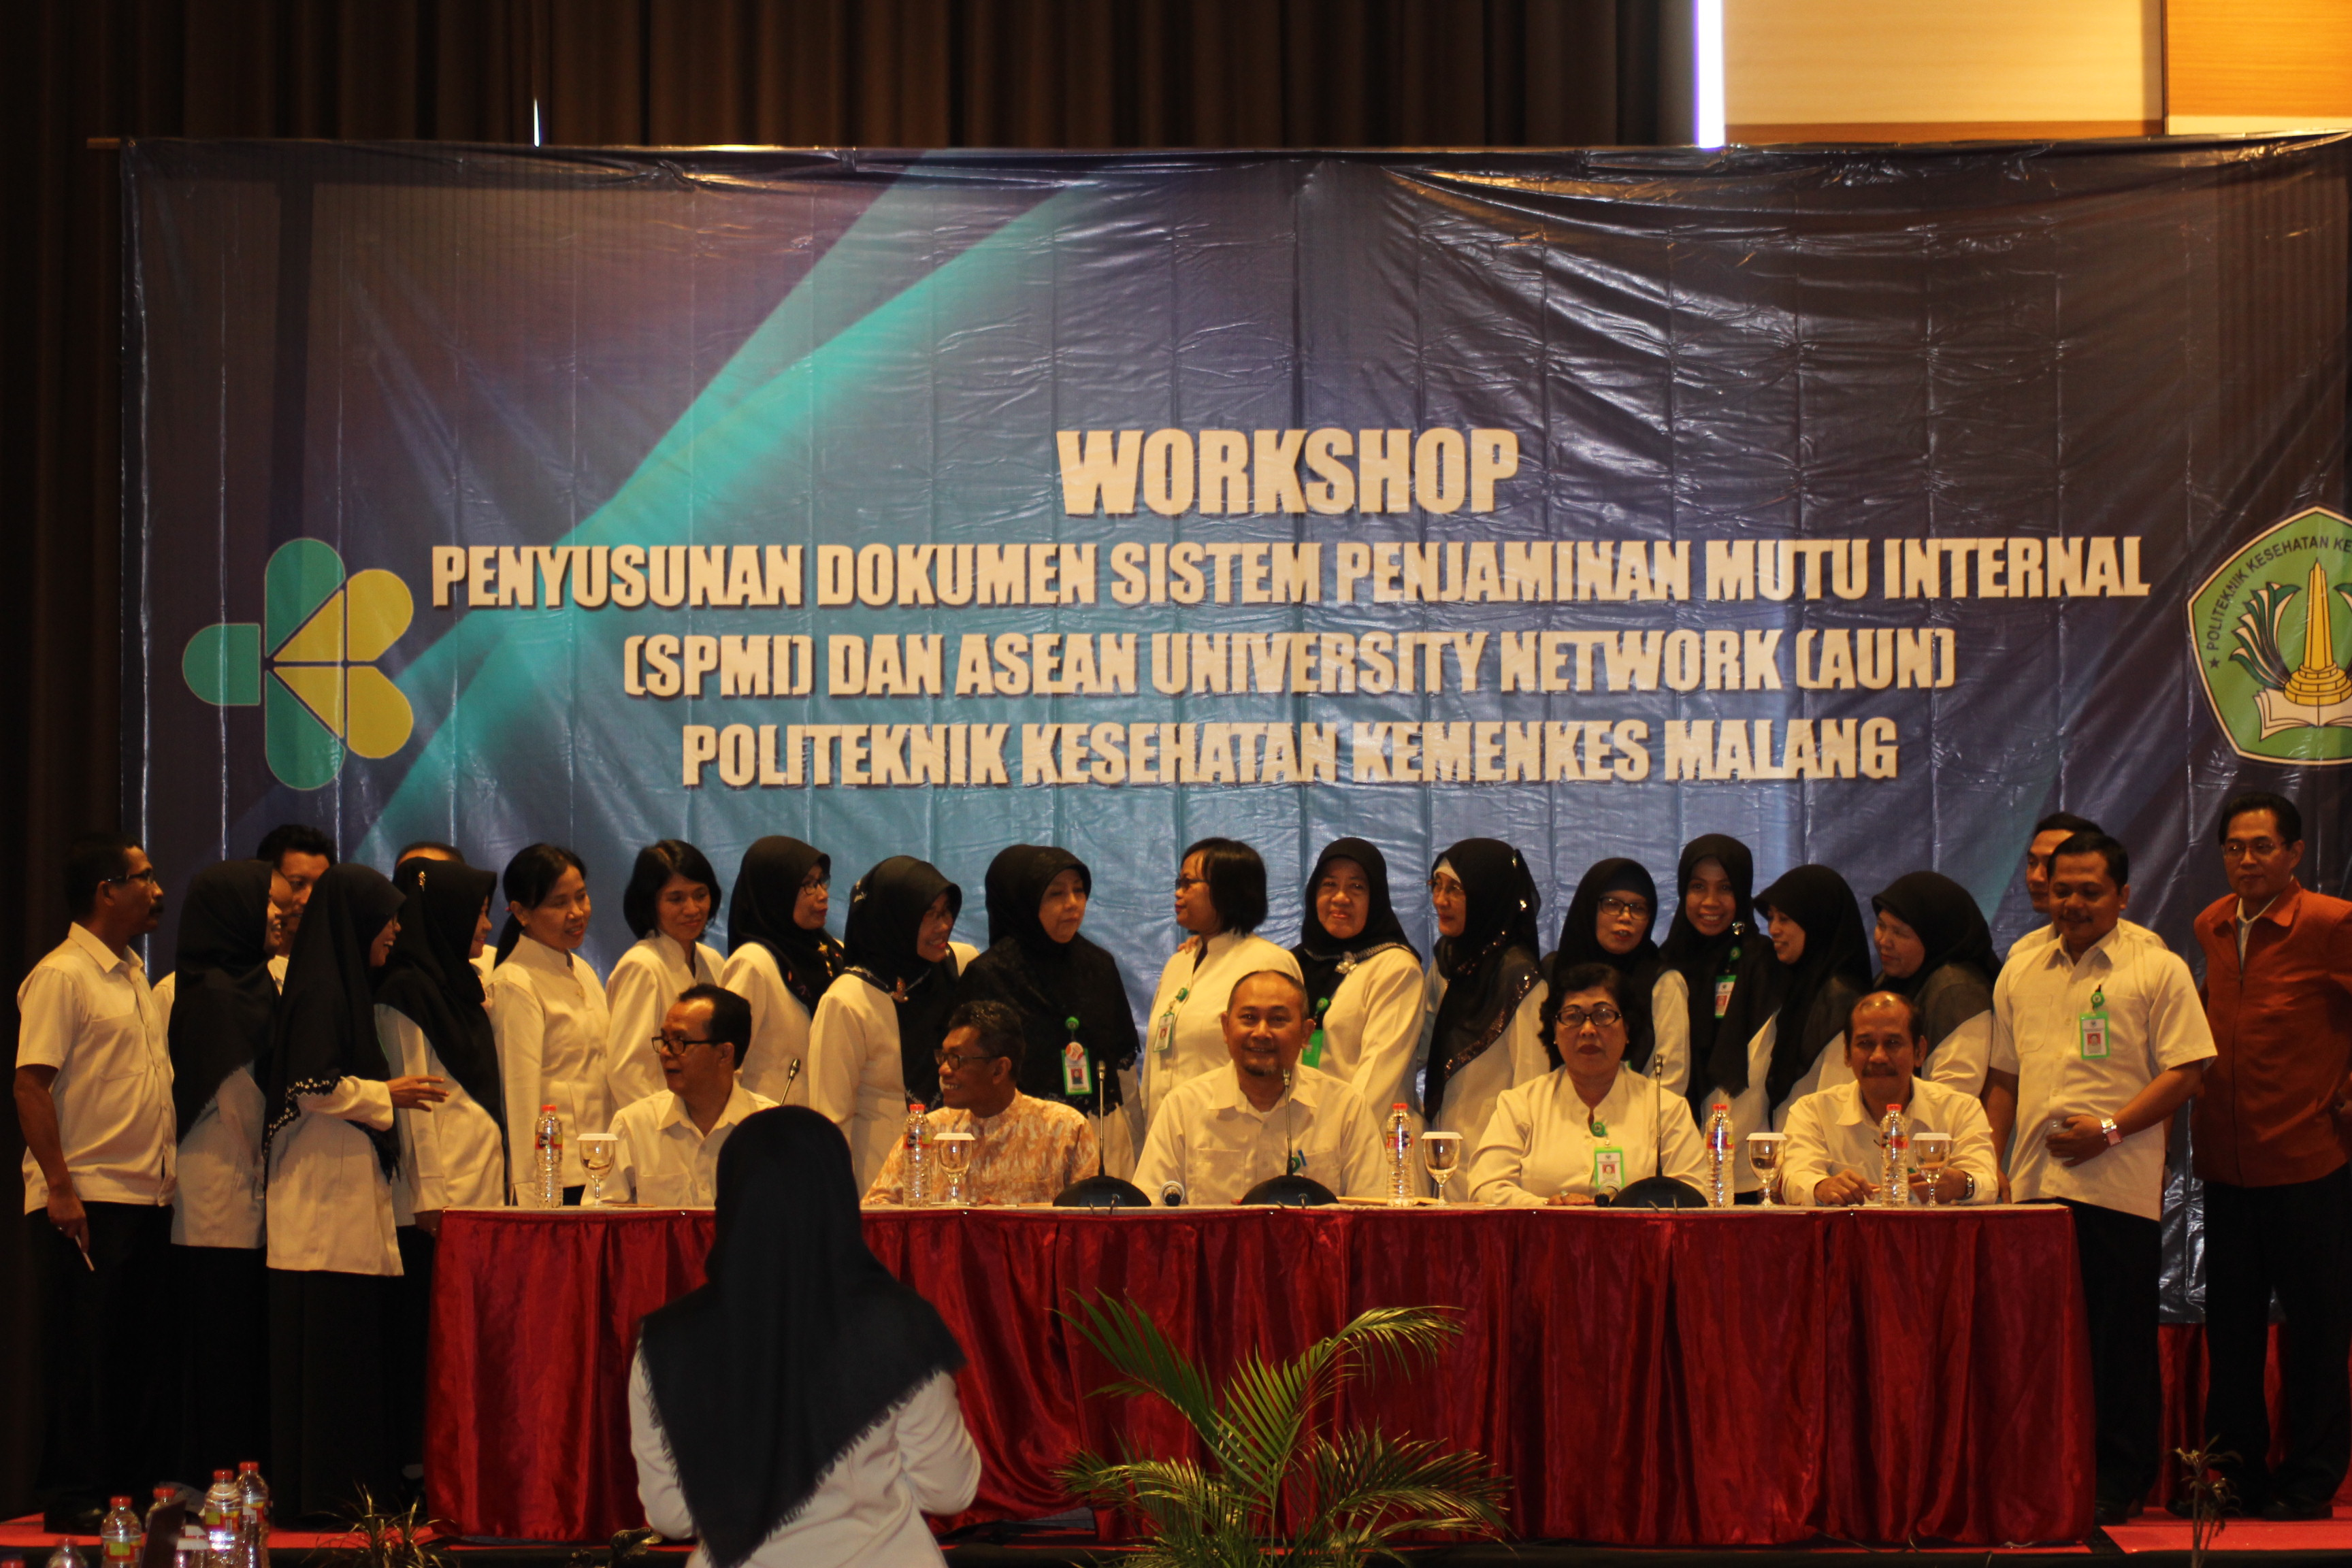 WORKSHOP PENYUSUNAN DOKUMEN PENJAMU INTERNAL:  <>